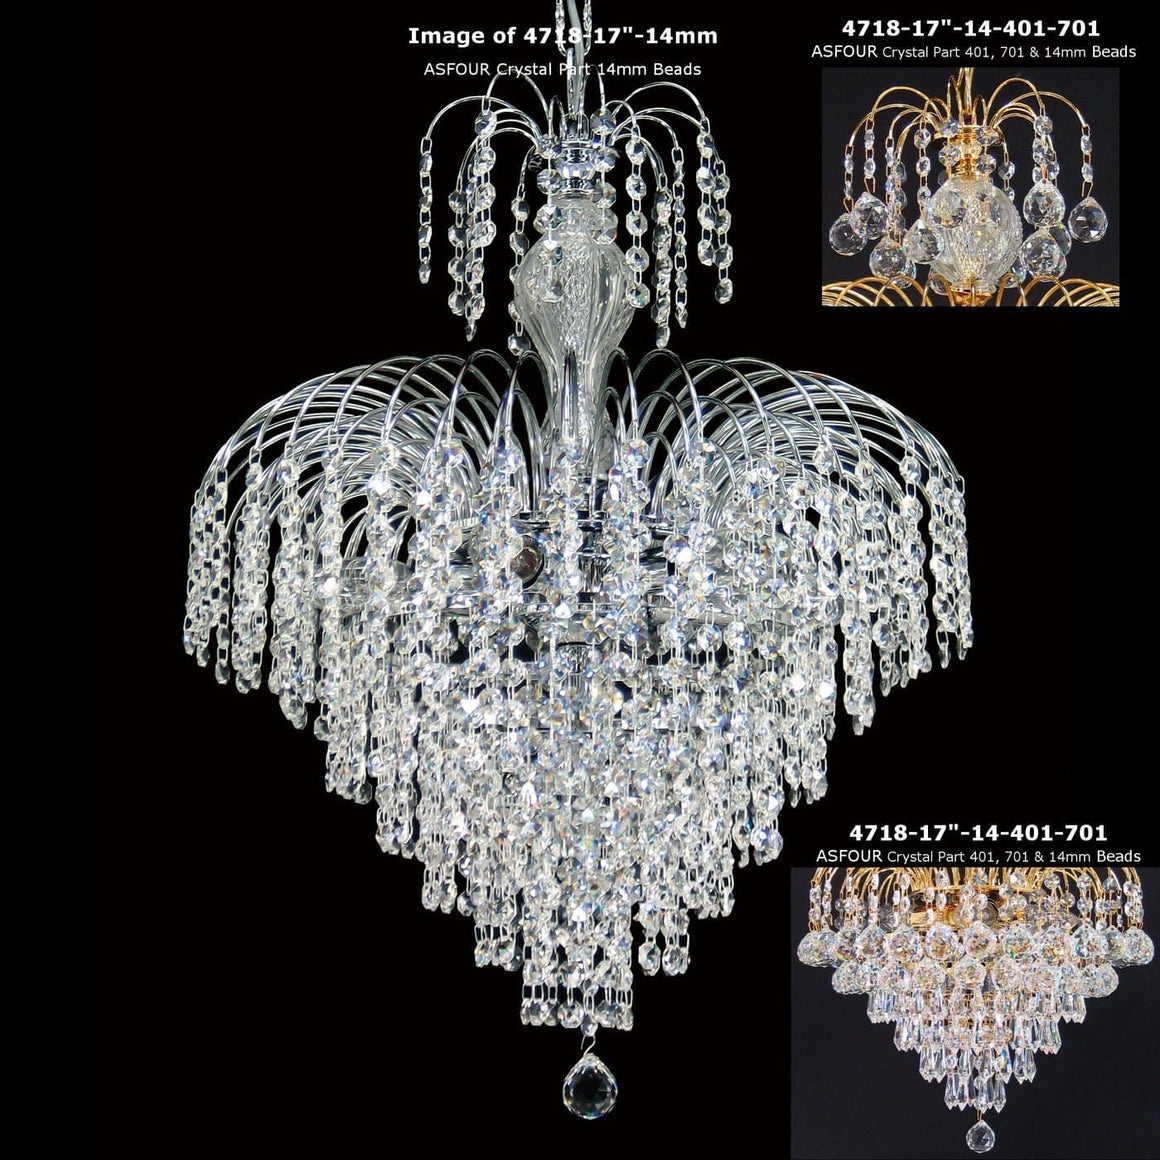 "7 light - 17"" Asfour Lead Crystal 24ct Gold Plated Waterfall Chandelier W/Prisma And Balls"